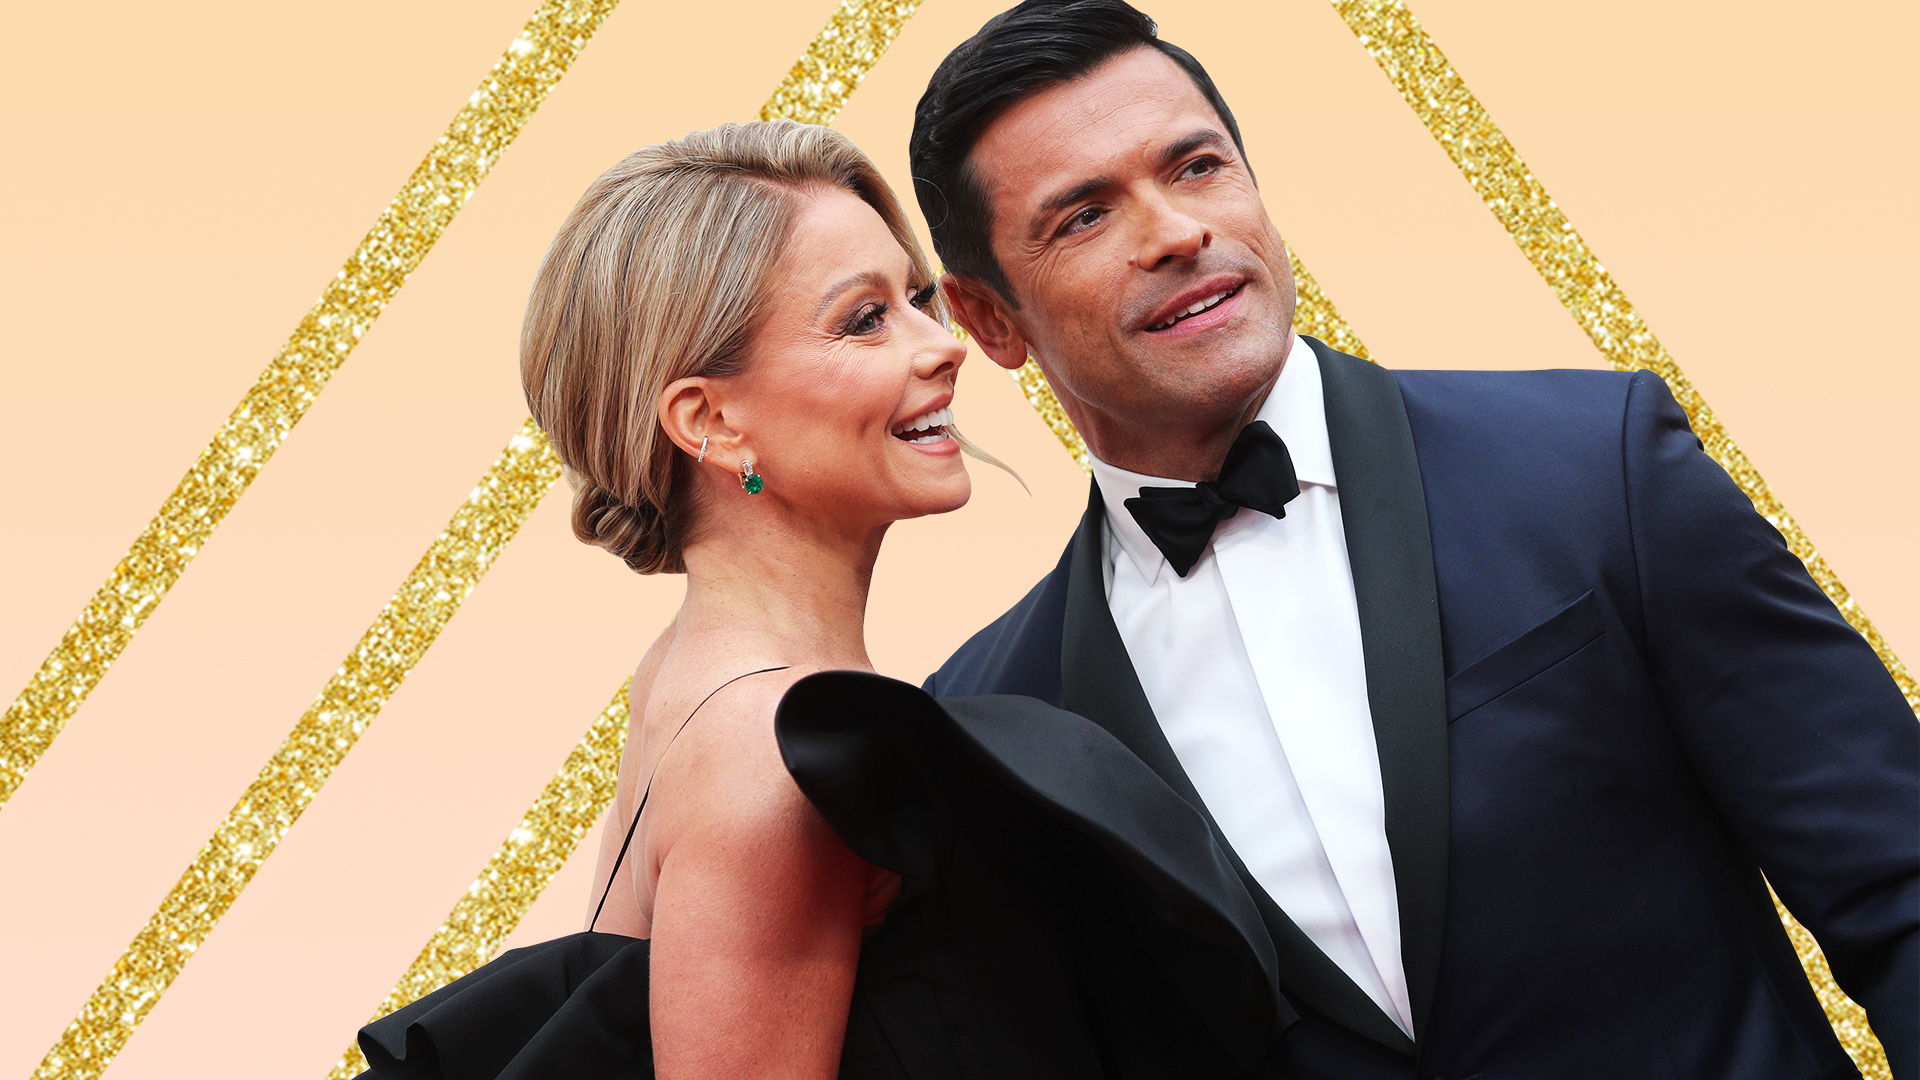 Celebrities Couples On The 2020 Academy Awards Red Carpet Photos Sheknows